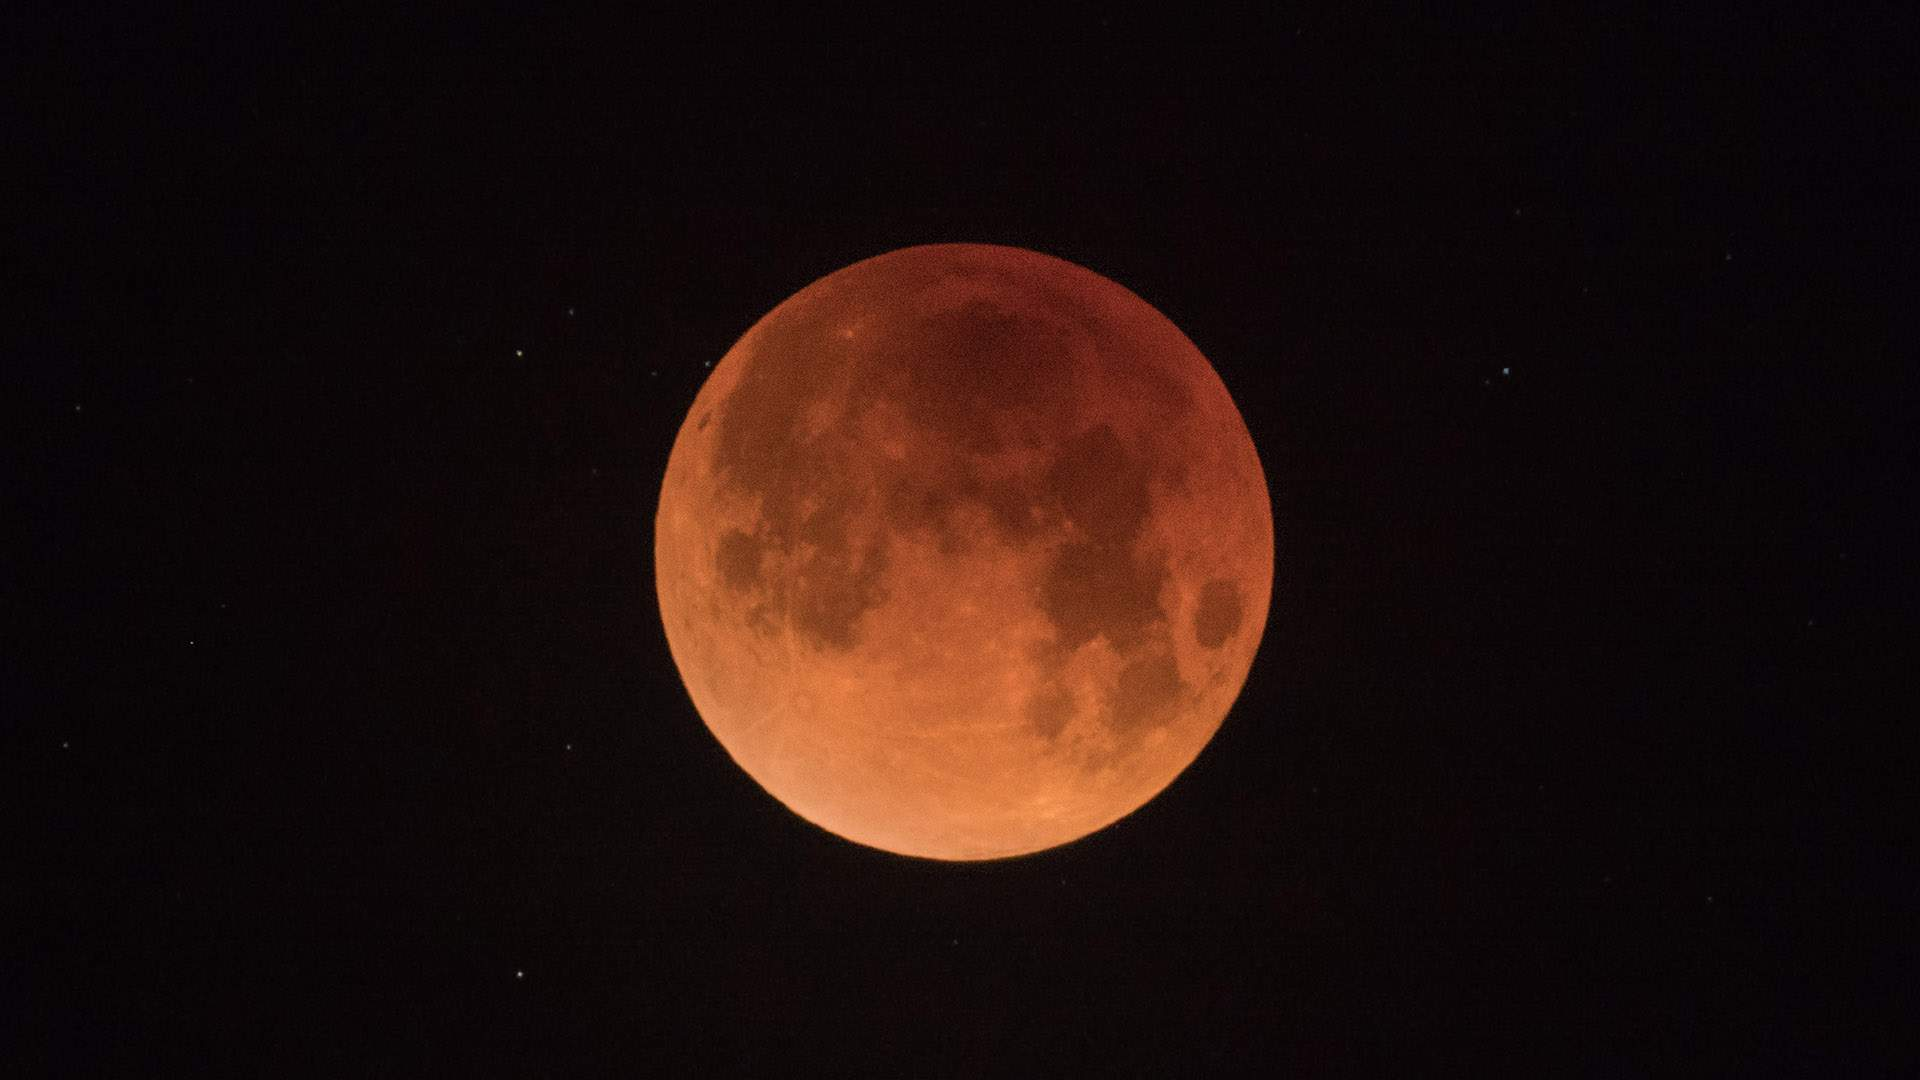 A 'Blood' Supermoon and Total Lunar Eclipse Will Be Visible in NZ This Month